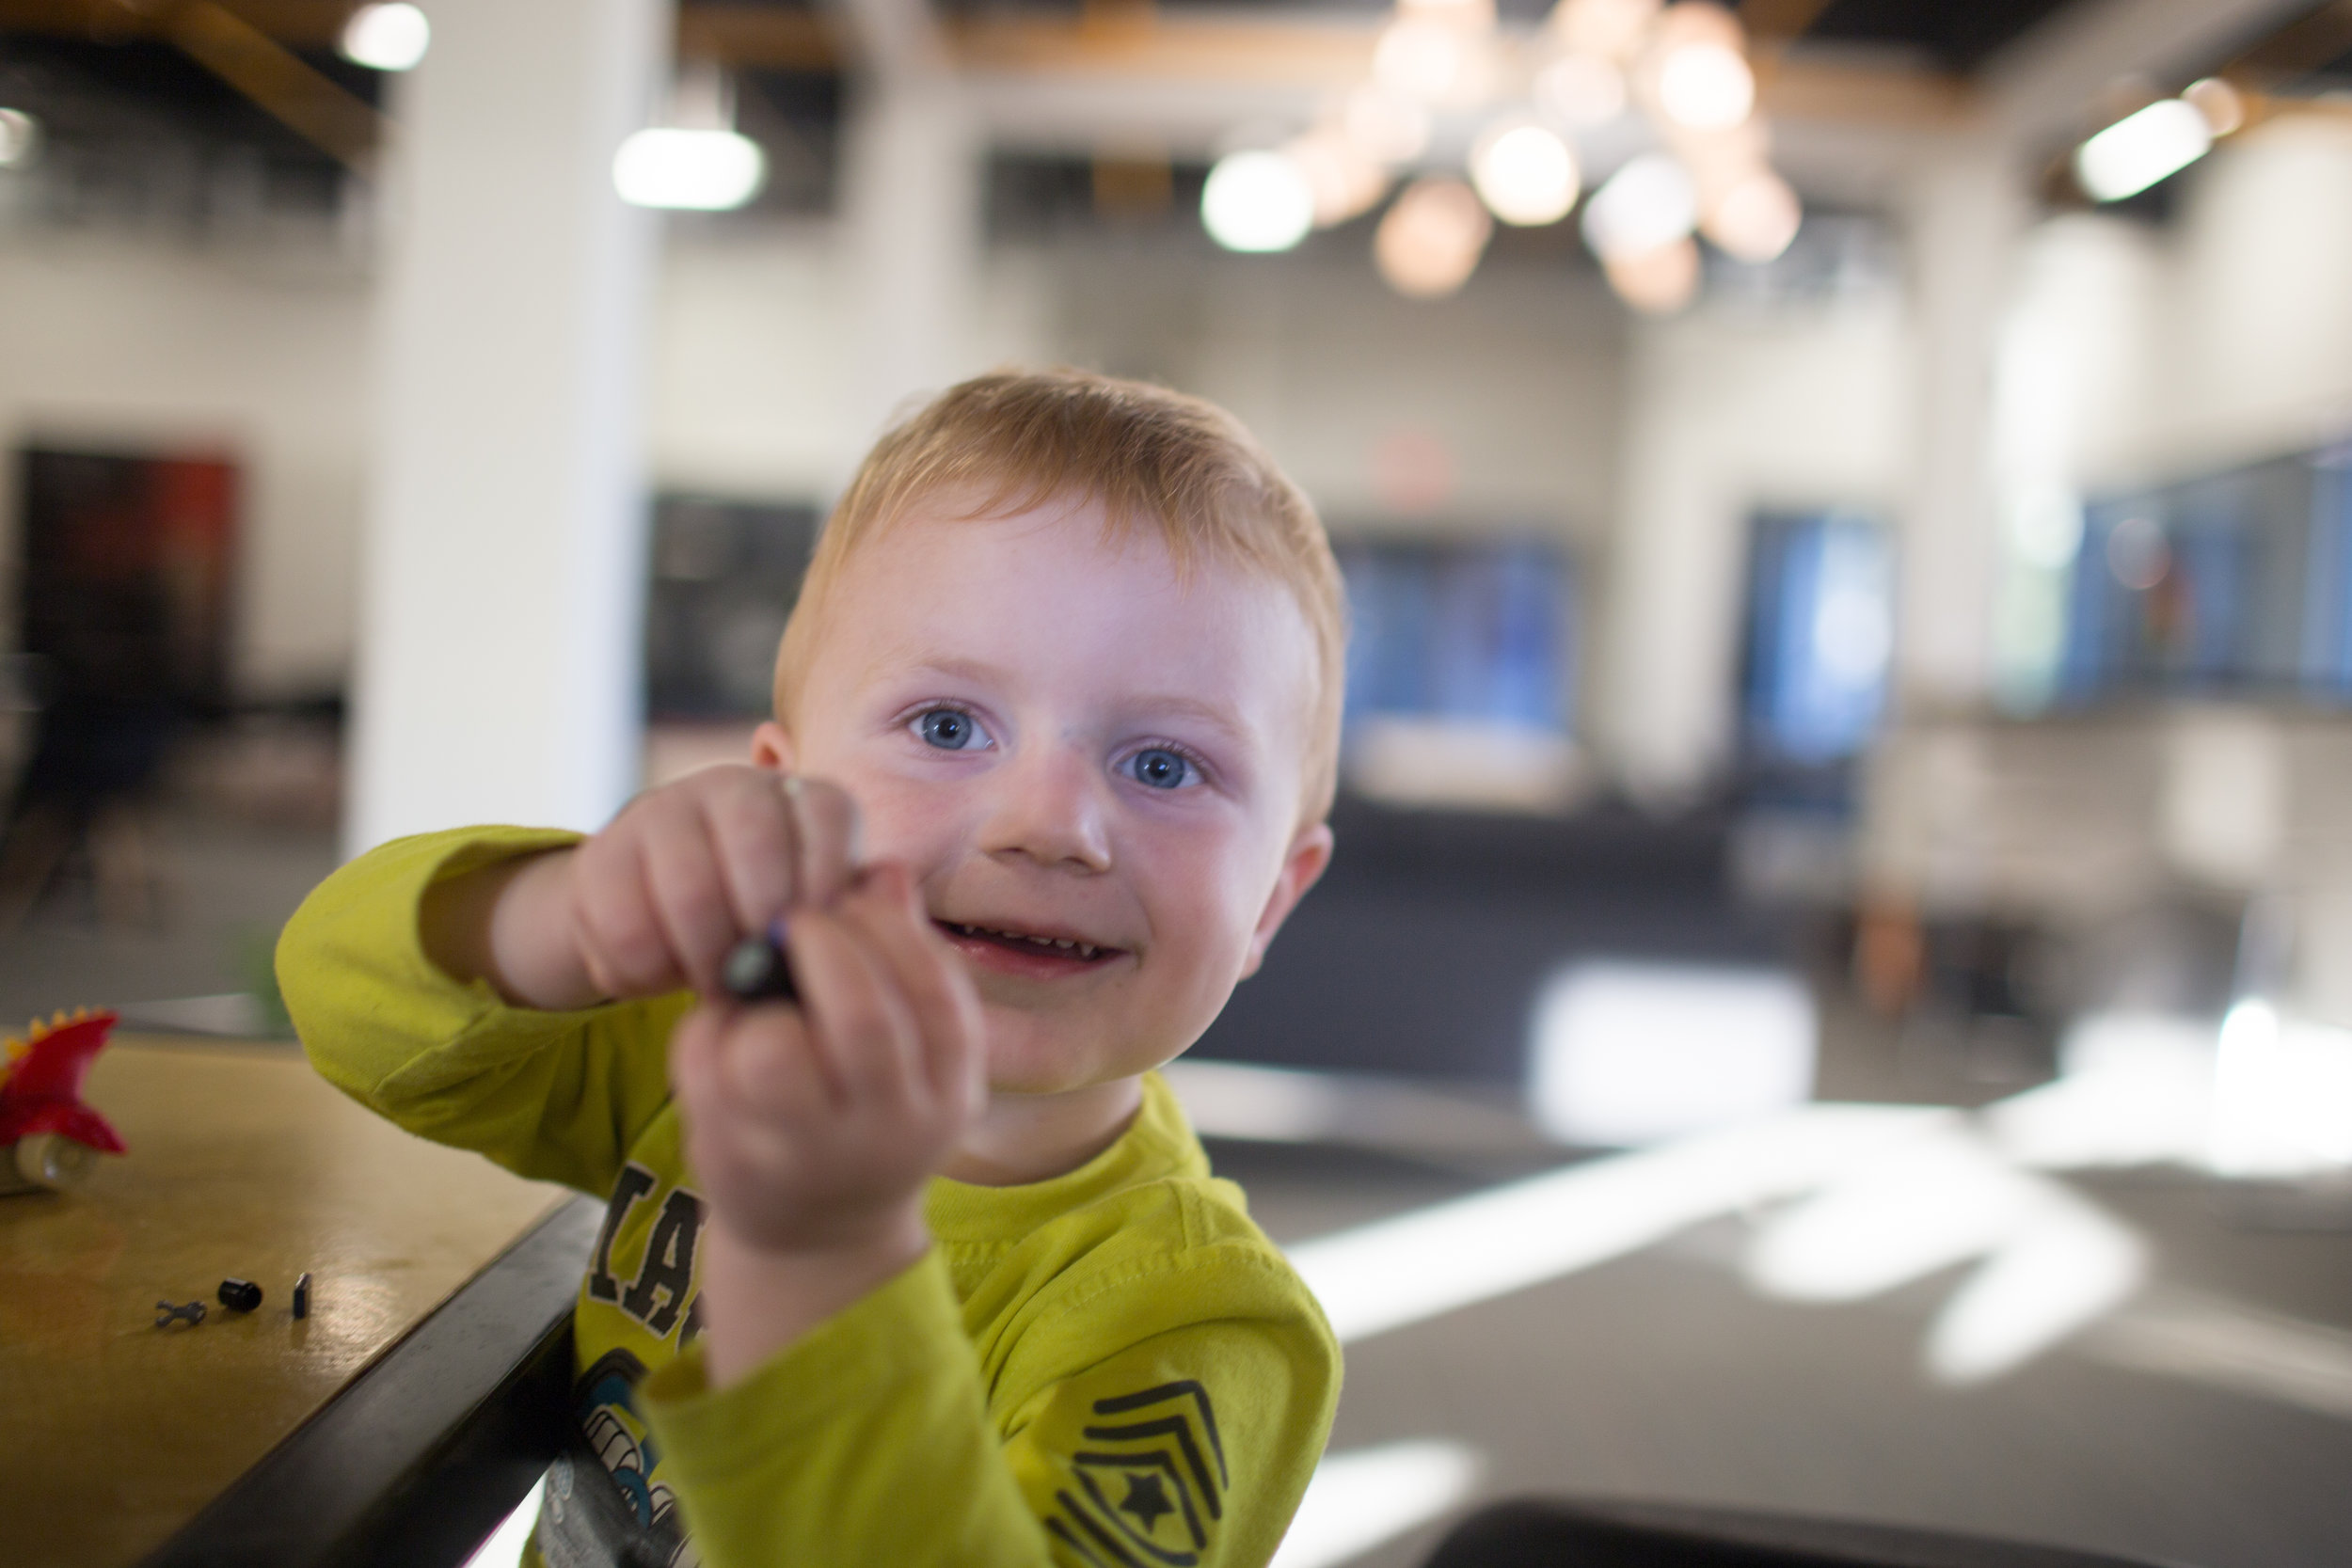 Erik is Igor's son. He's too young to be your fractional executive, but he loves playing with Lego's at Advent Coworking!